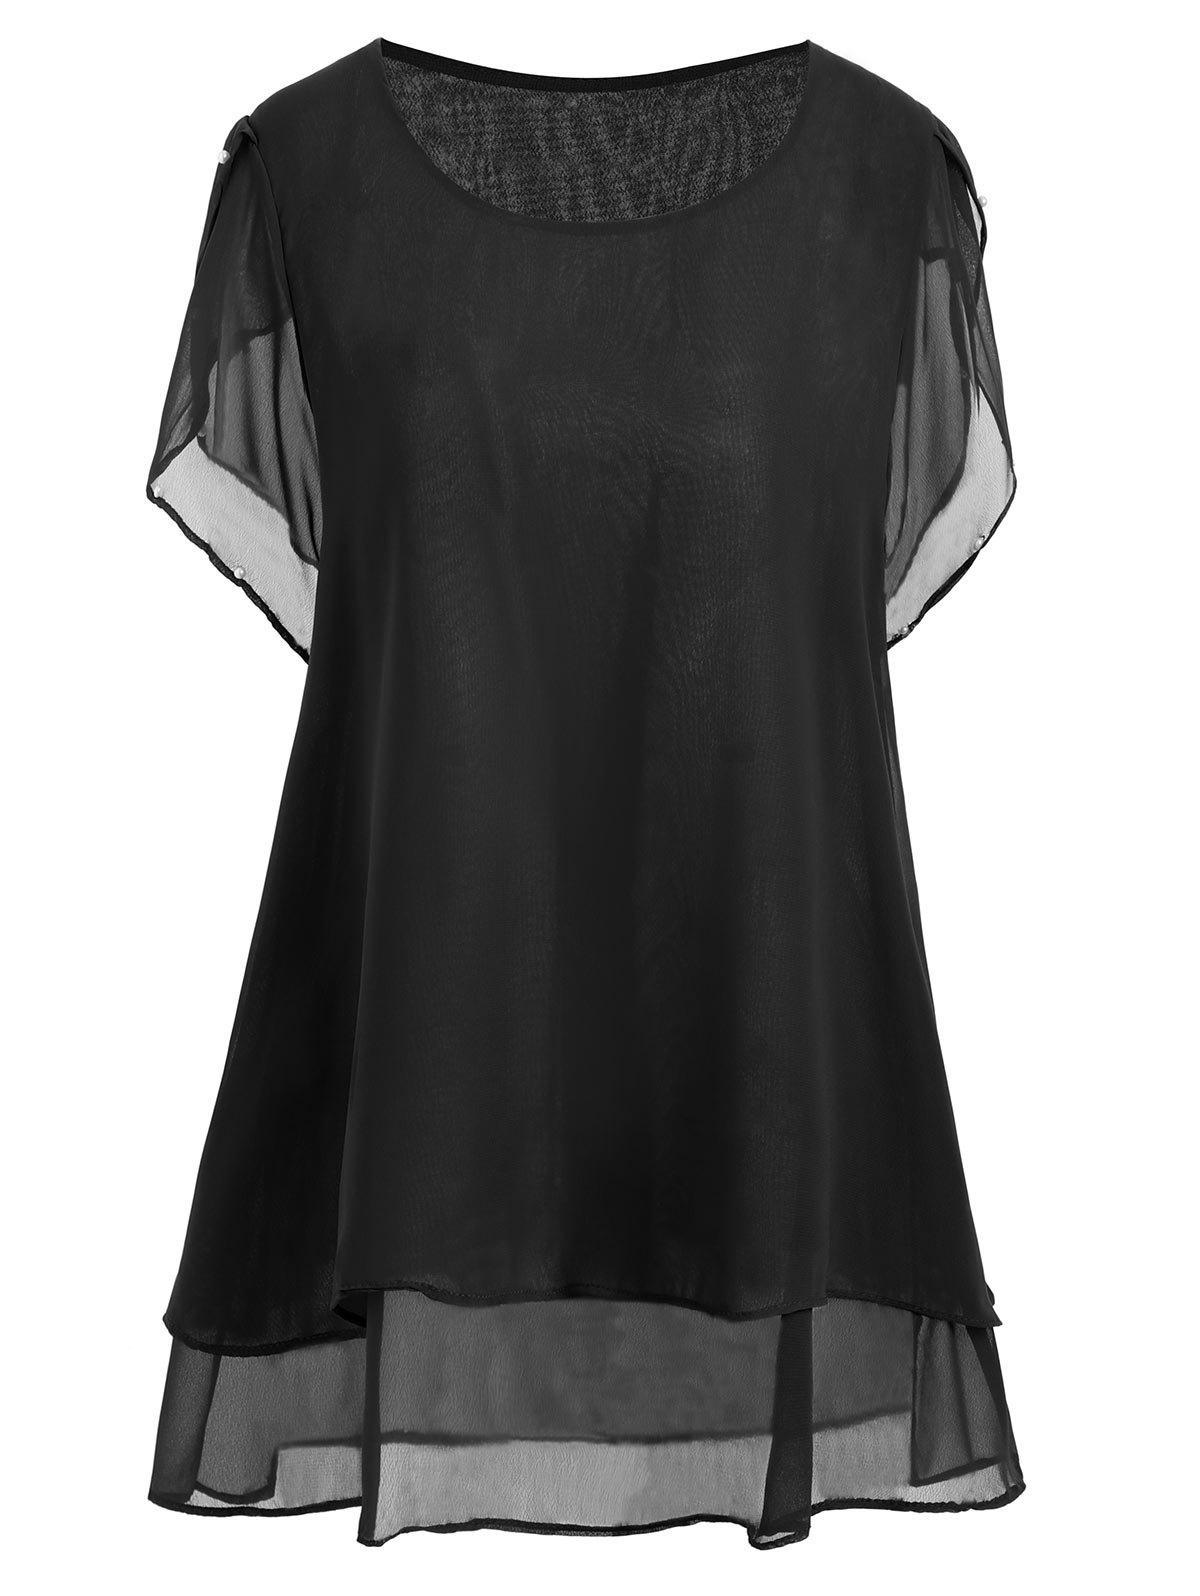 Plus Size Beaded Chiffon Tunic TopWOMEN<br><br>Size: 5XL; Color: BLACK; Material: Polyester; Shirt Length: Long; Sleeve Length: Short; Collar: Round Neck; Style: Casual; Season: Summer; Pattern Type: Solid; Weight: 0.2000kg; Package Contents: 1 x Top;